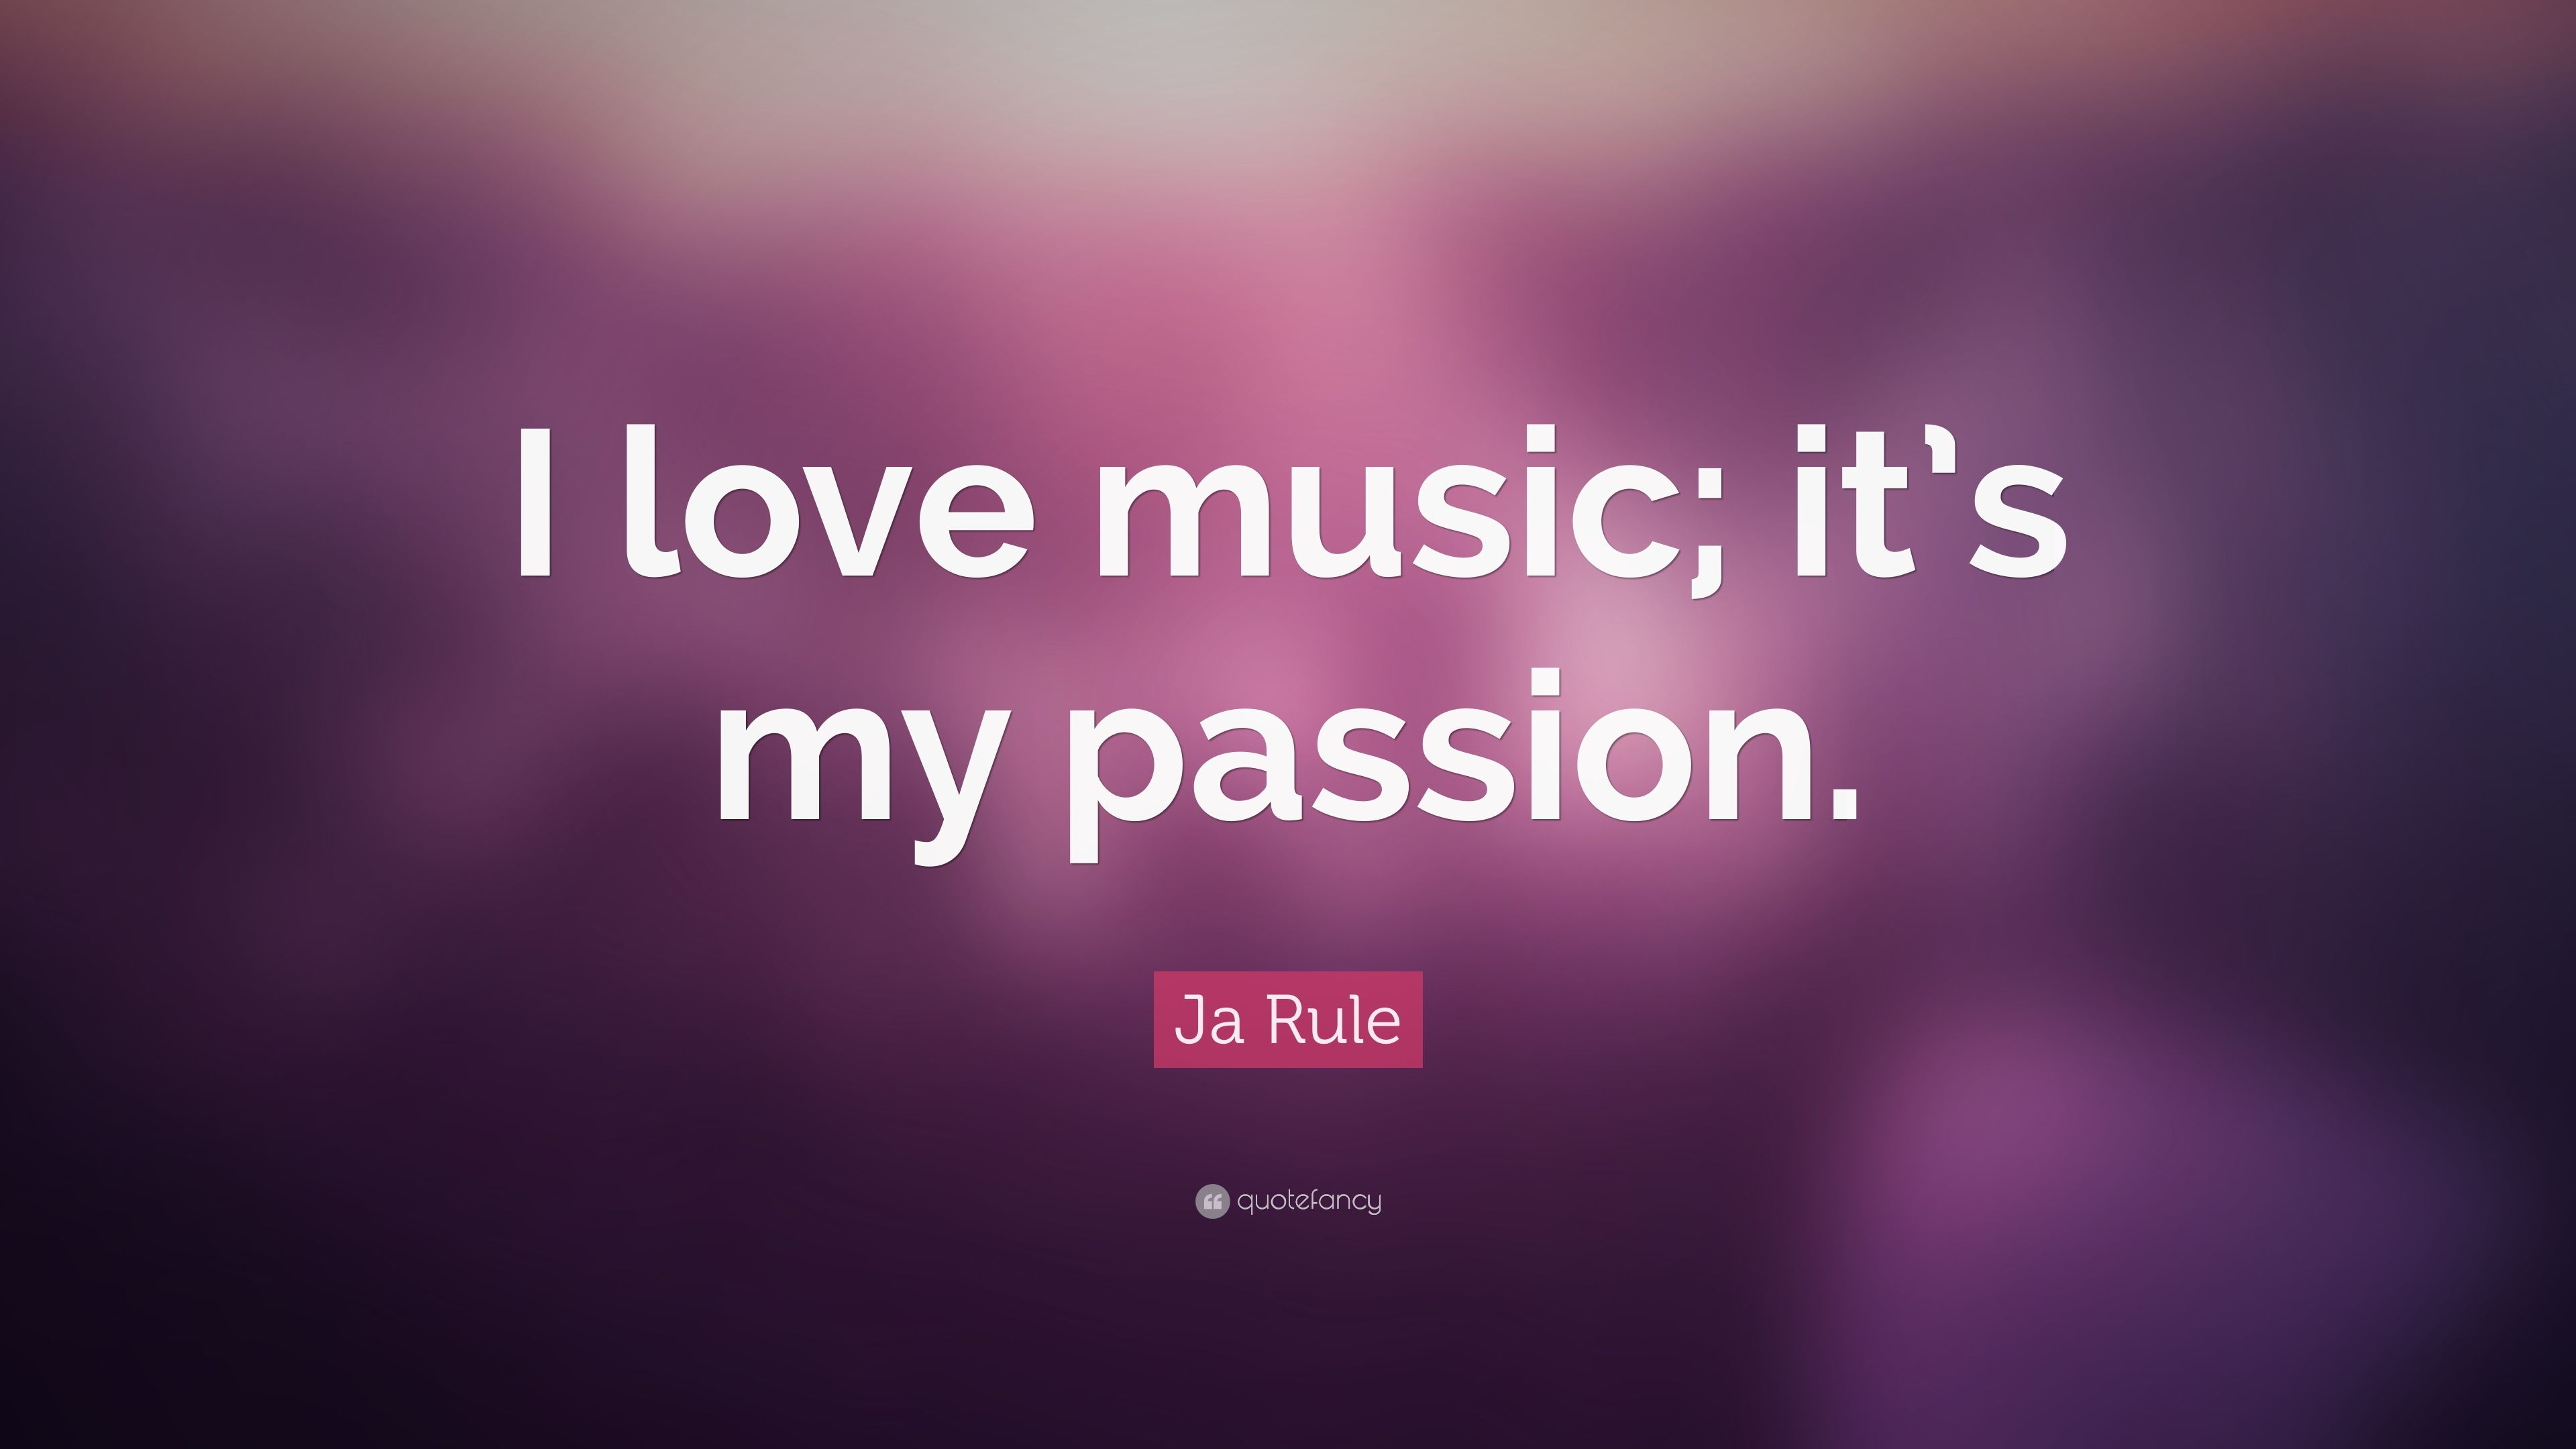 """Ja Rule Love Quotes Cool ja rule quote: """"i love music; it's my passion."""" (9 wallpapers"""